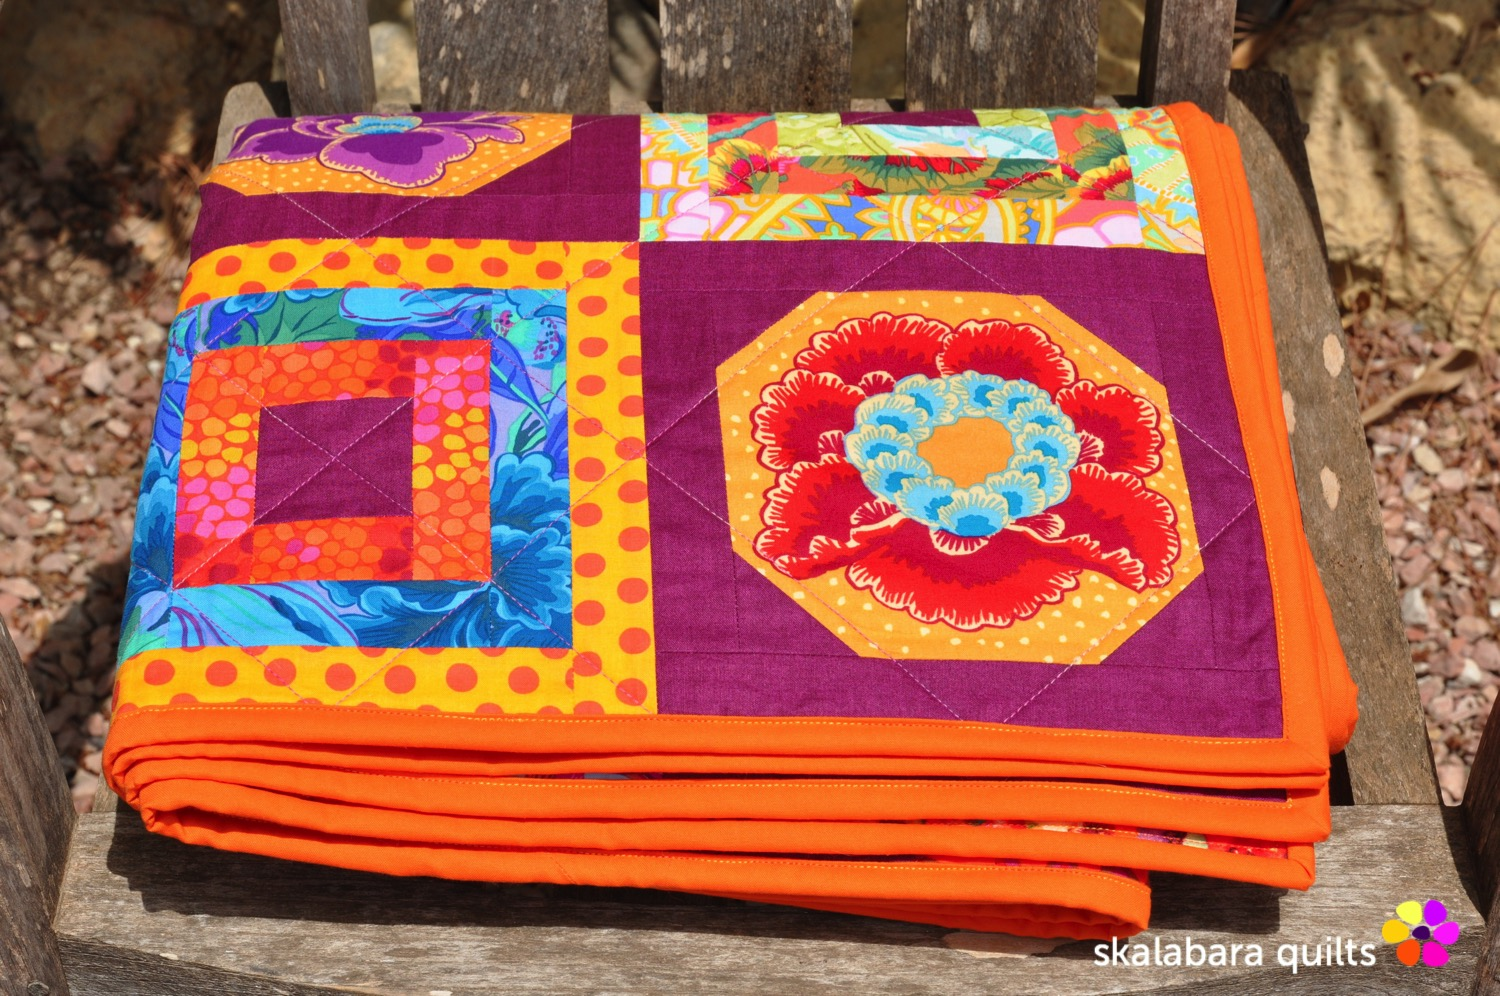 magenta and gold flowers quilt binding - skalabara quilts